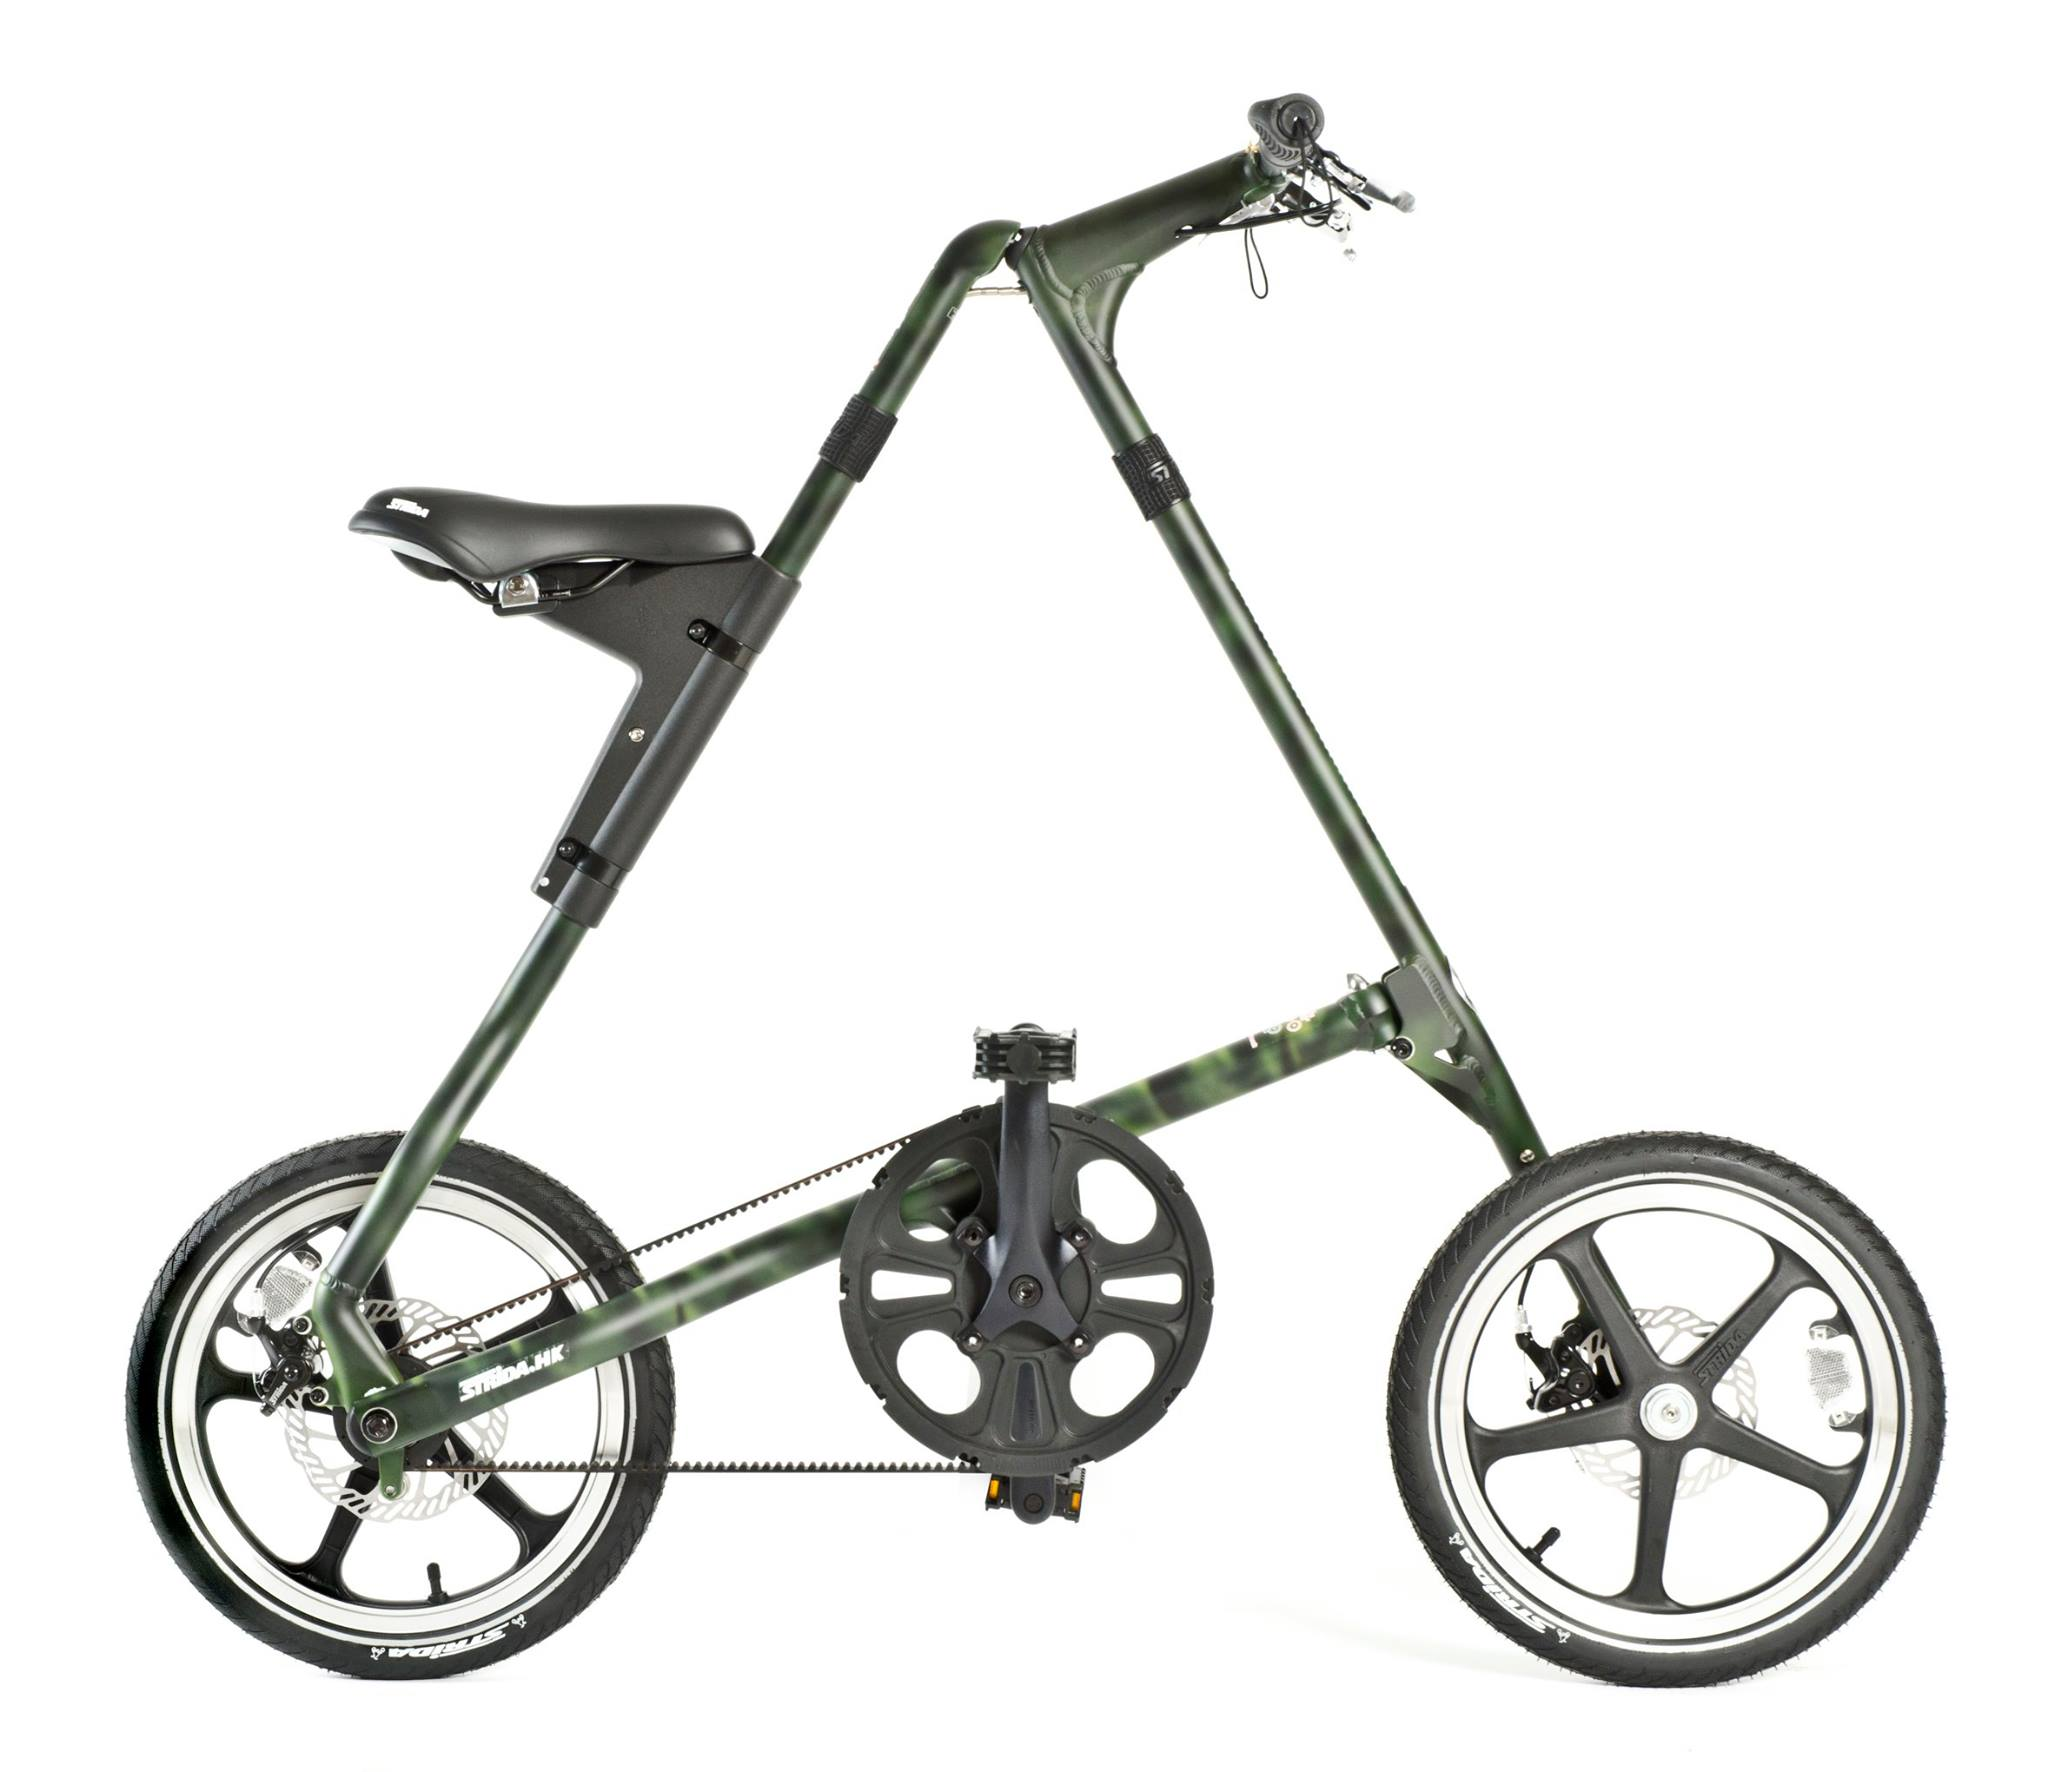 1399259_931791796914898_1345292897243289510_o strida lt STRiDA LT 1399259 931791796914898 1345292897243289510 o